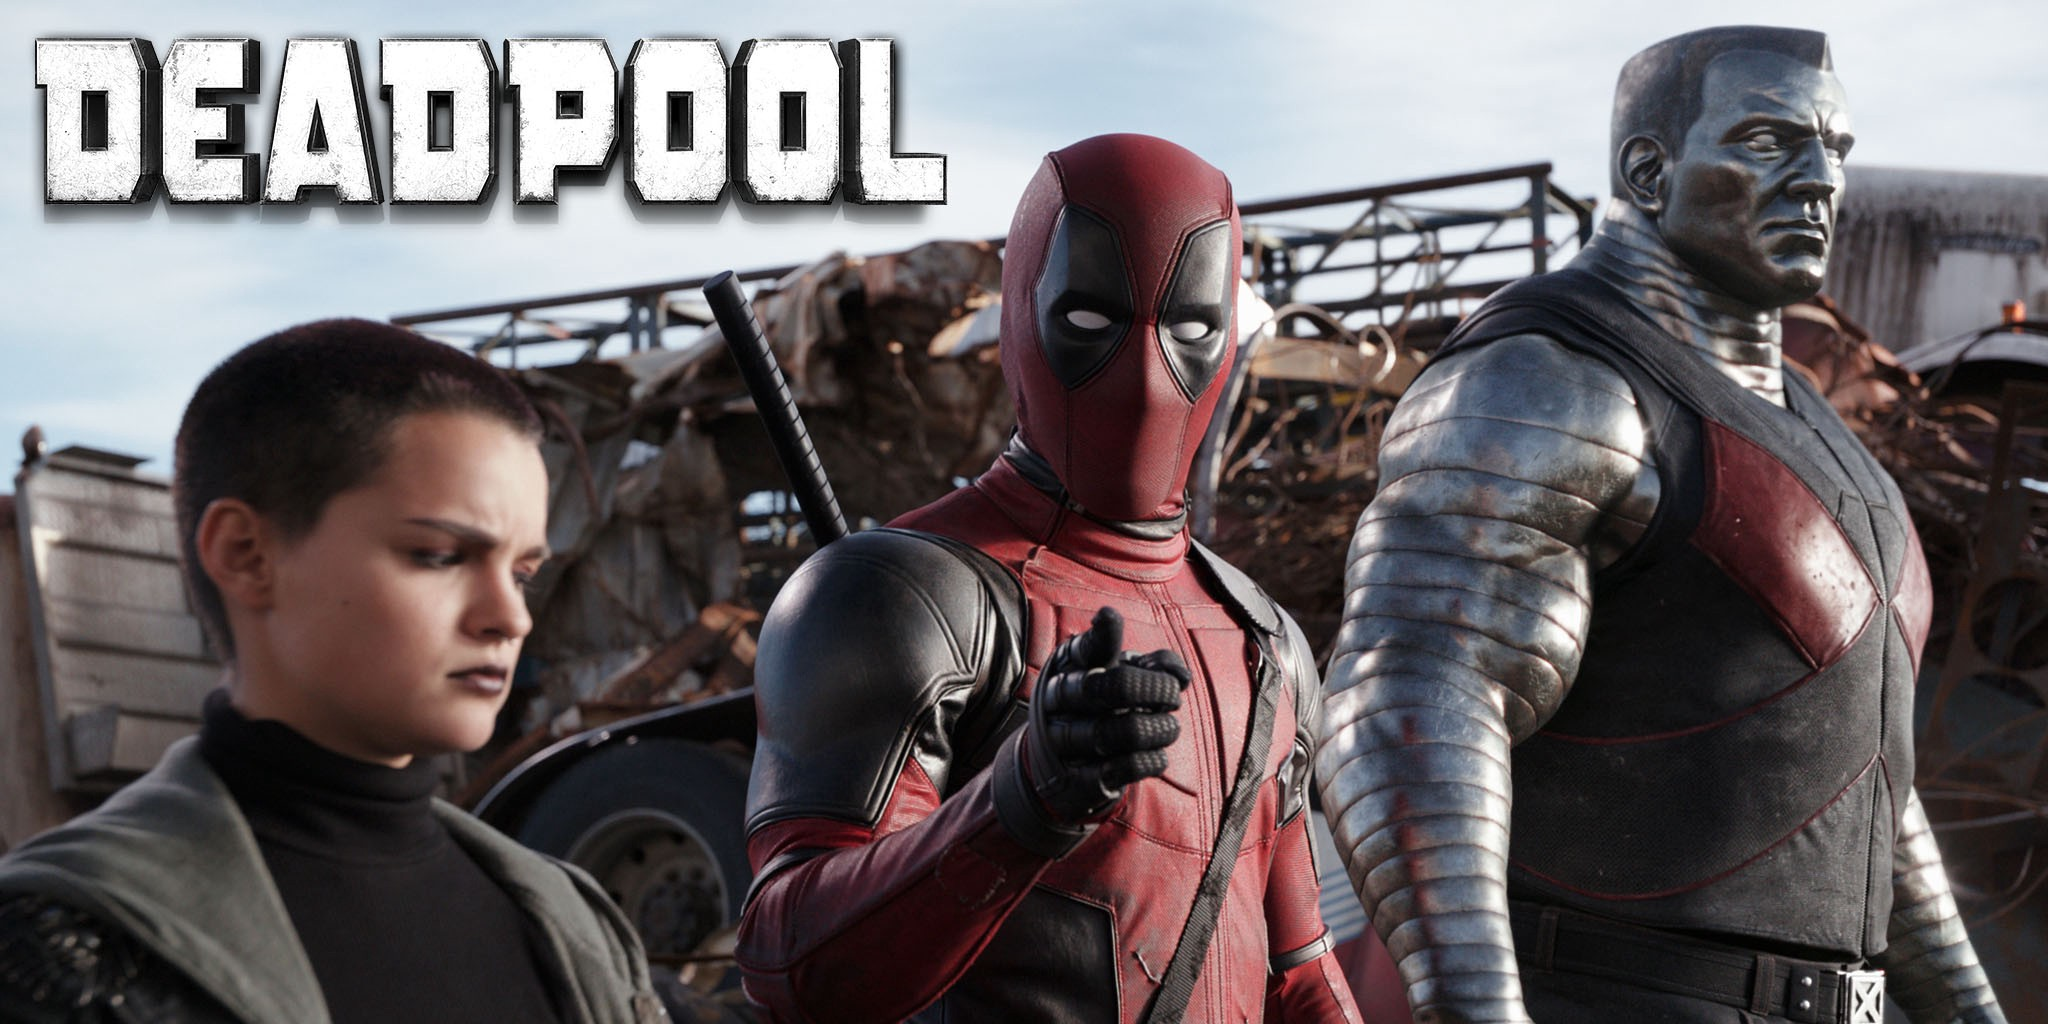 Standing left to right, the characters Negasonic Teenage Warhead, Deadpool, and Colossus. Deadpool points at the audience.